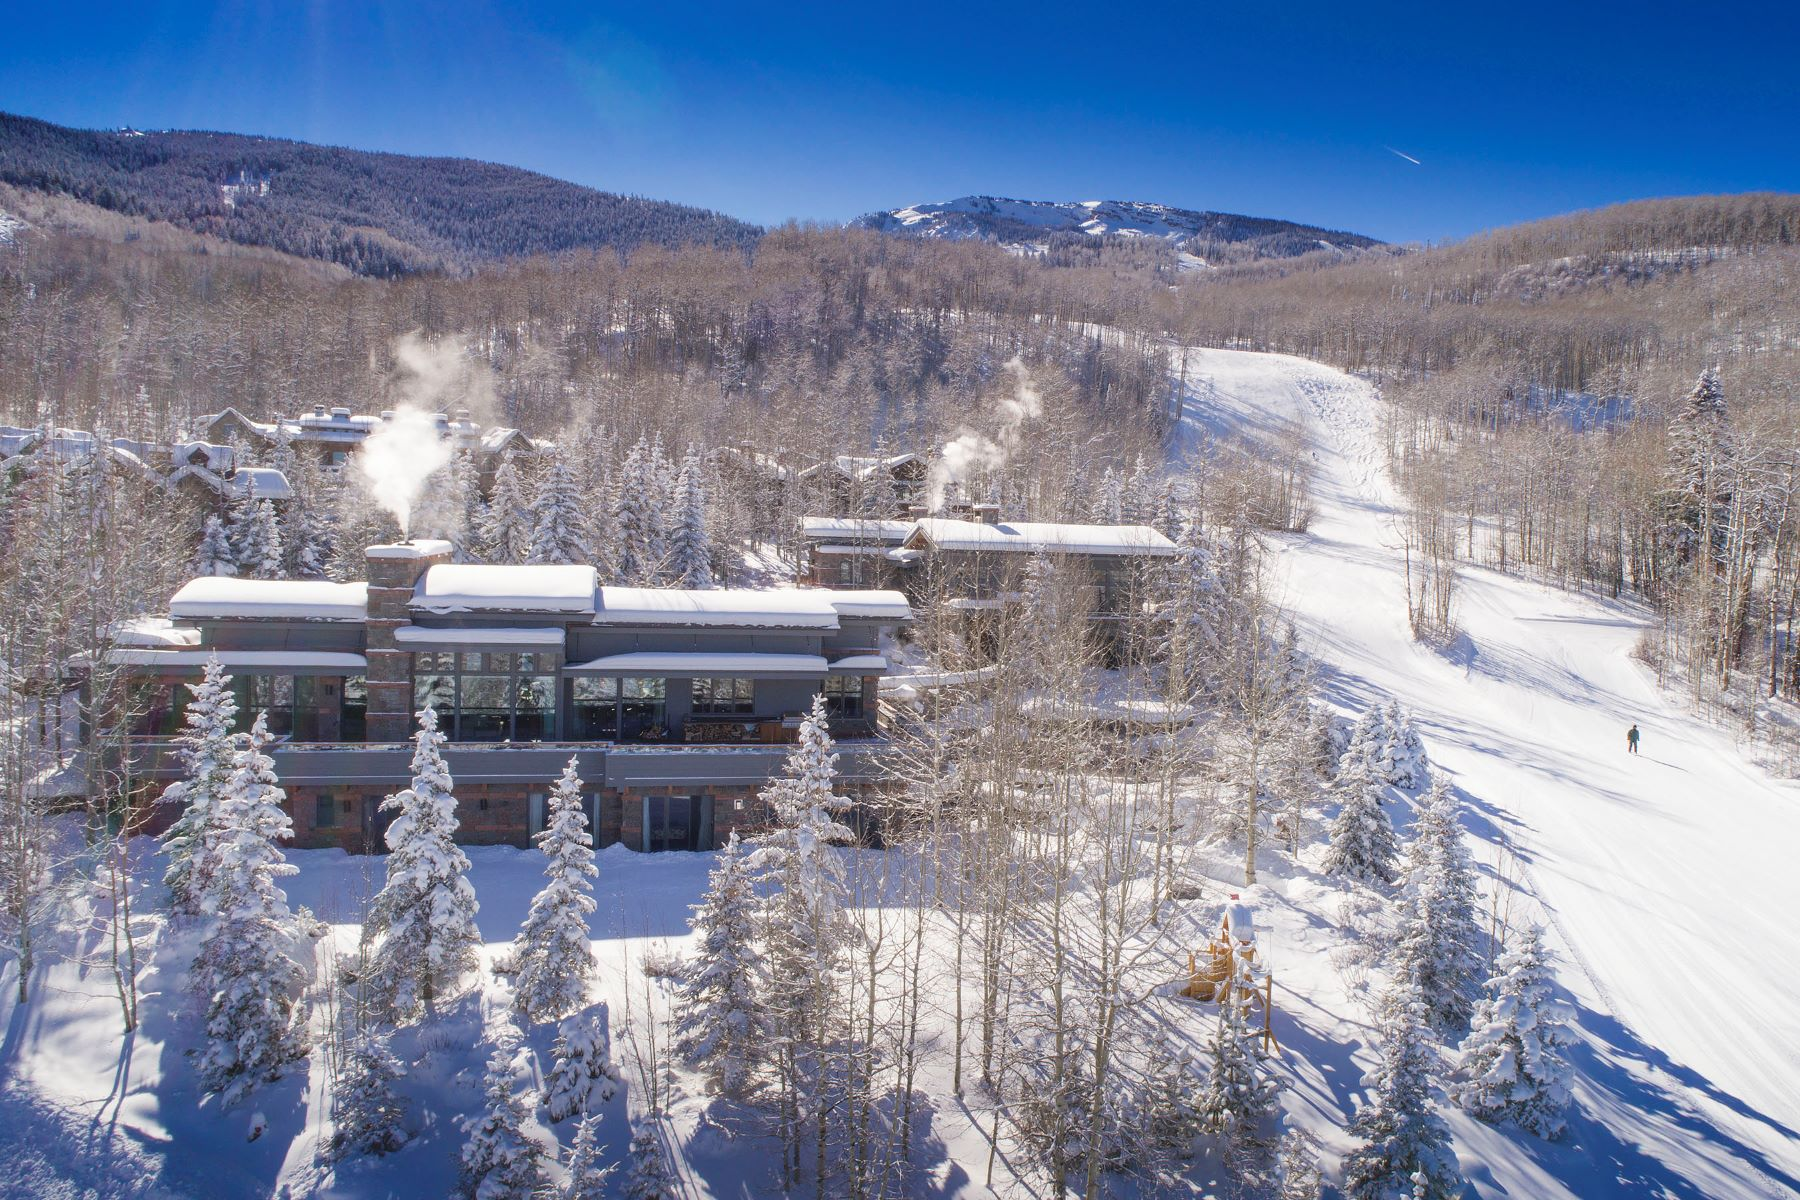 Single Family Home for Sale at Slopeside Estate 183 E. Fork Lane, Snowmass Village, Colorado, 81615 United States